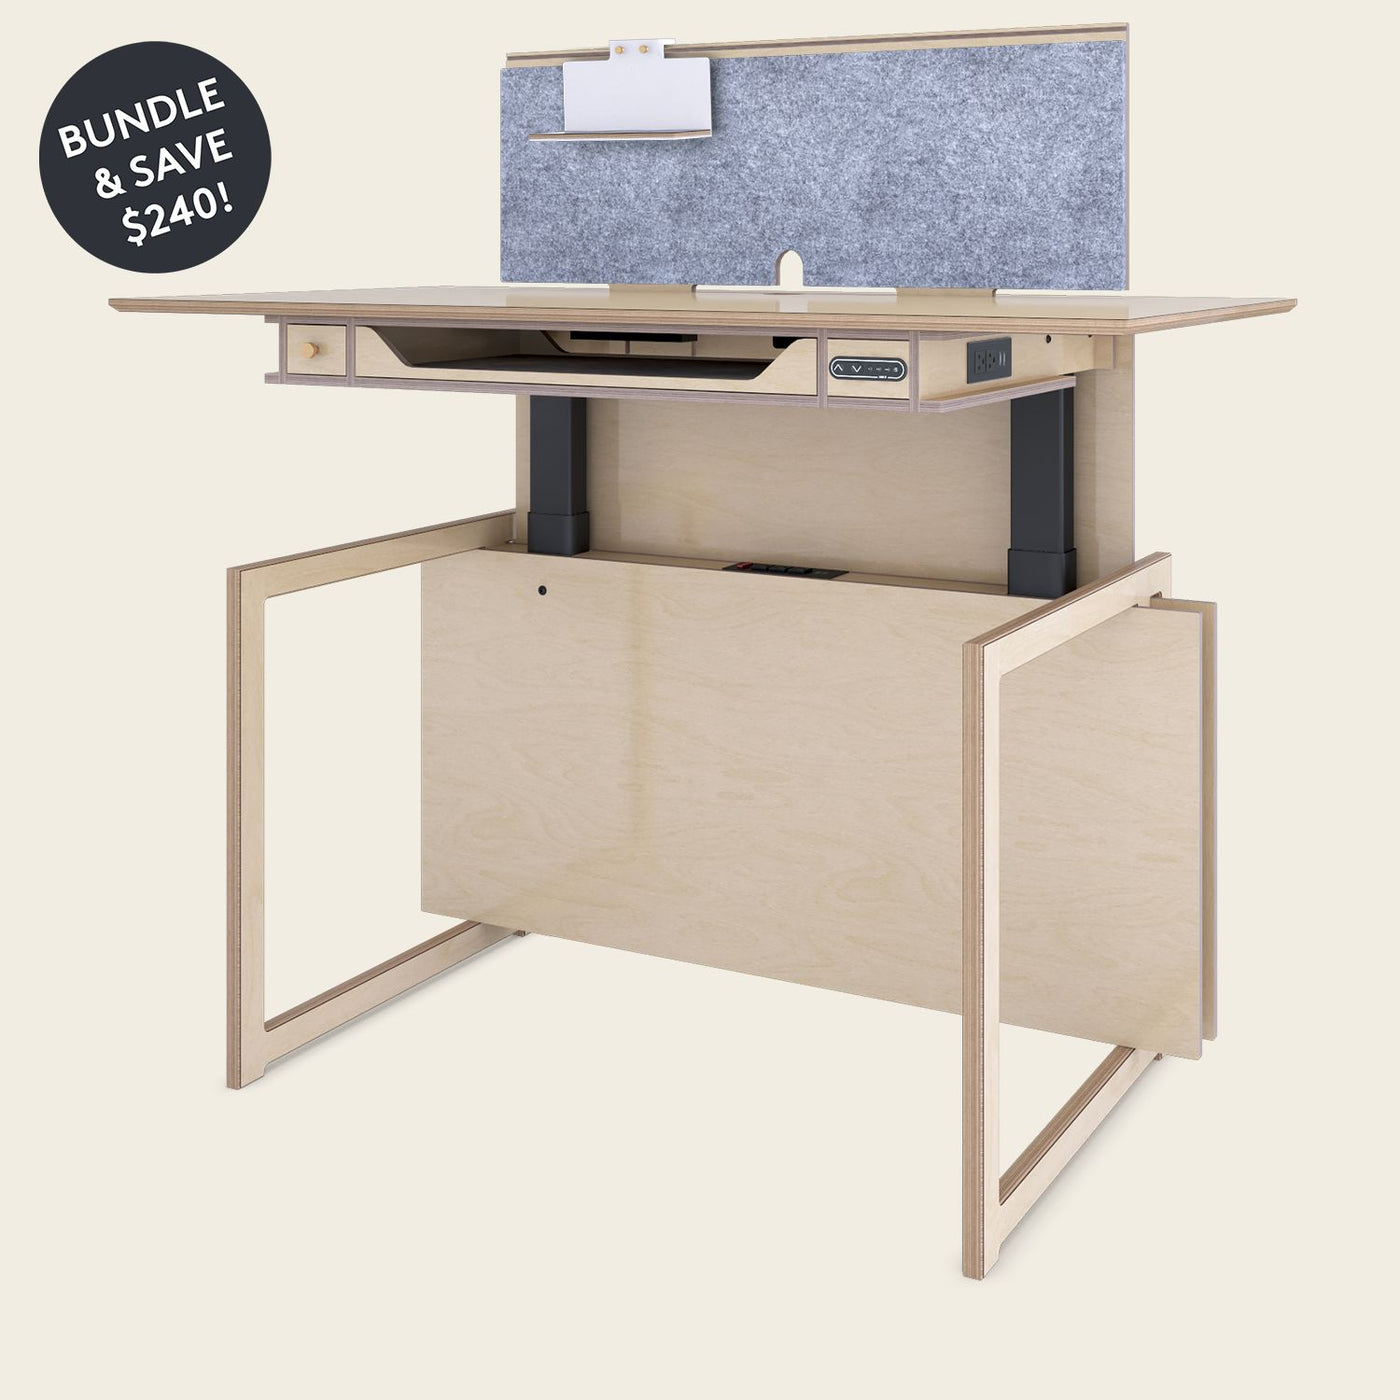 The Baltic Sit-Stand Desk Bundle